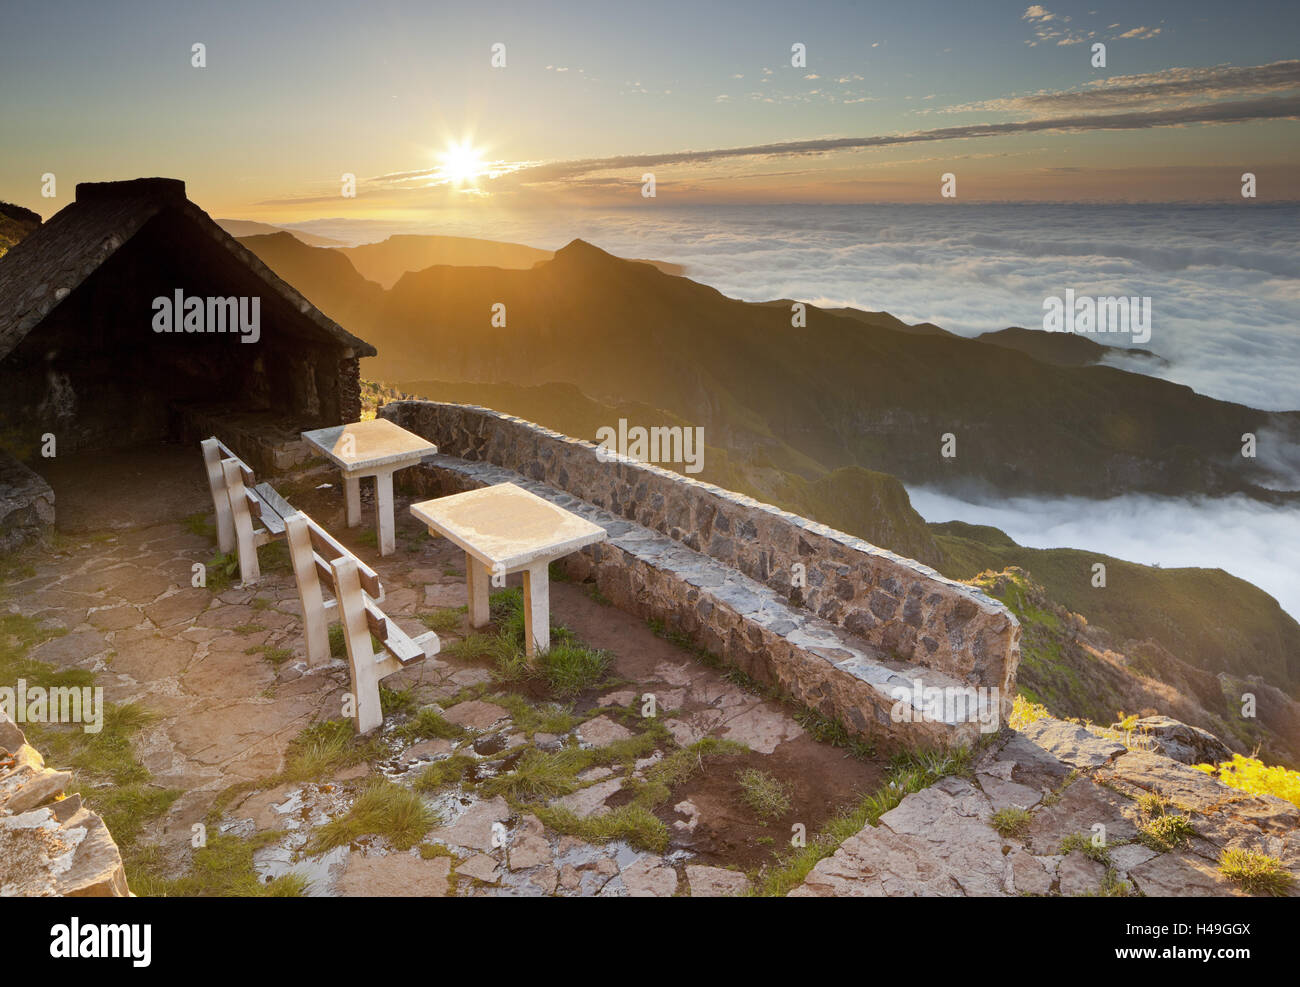 Resting place near Terxeira, stone bank, sunset, Madeira, Portugal, - Stock Image